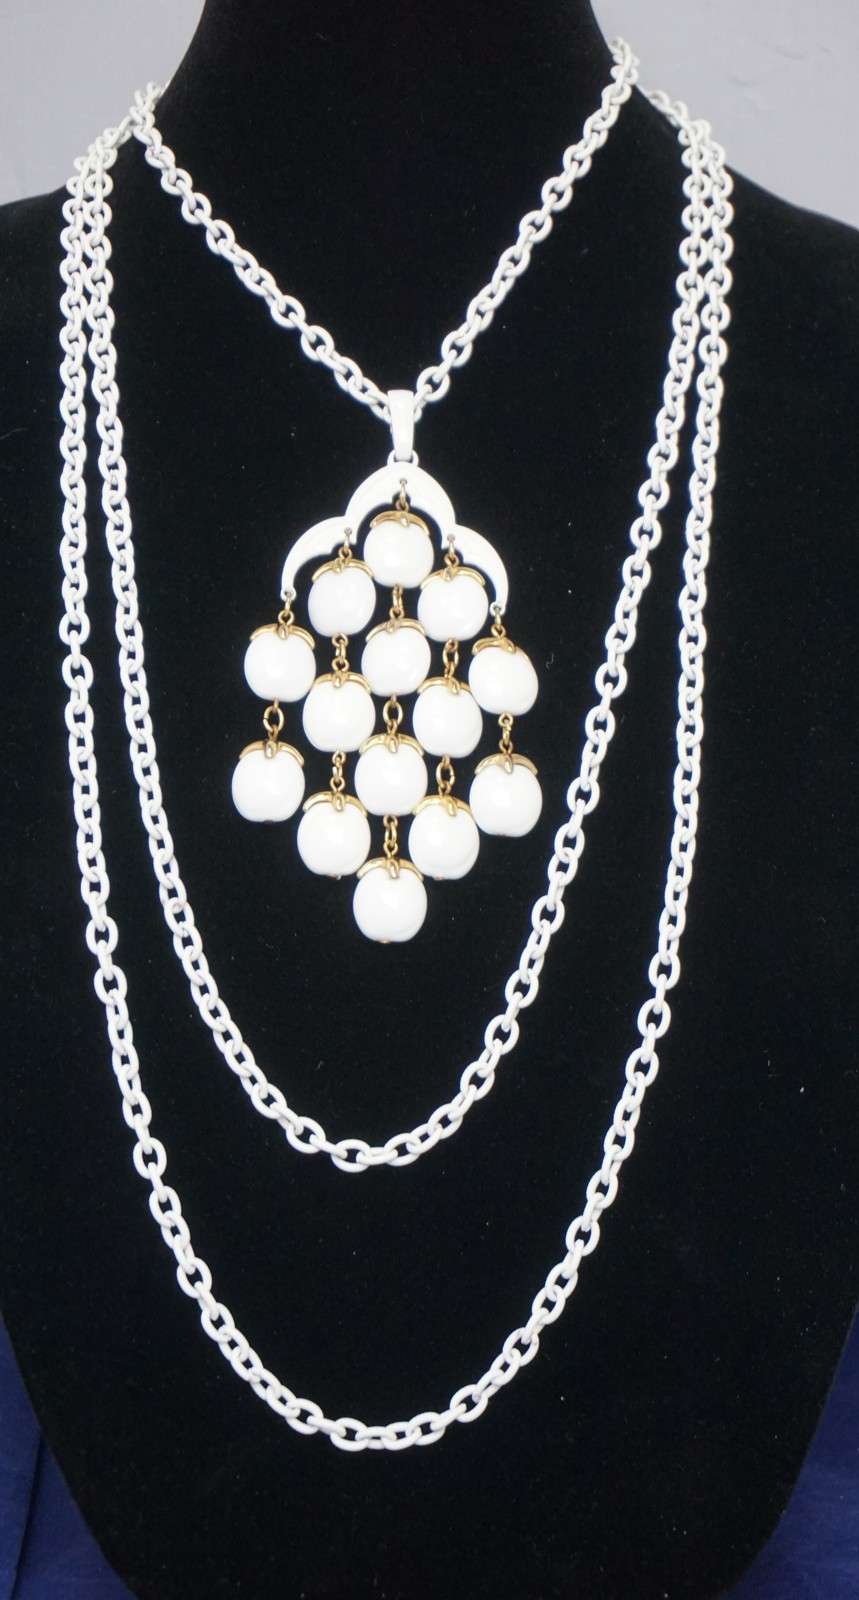 Primary image for Vintage CROWN TRIFARI White Lucite Pendant Necklace